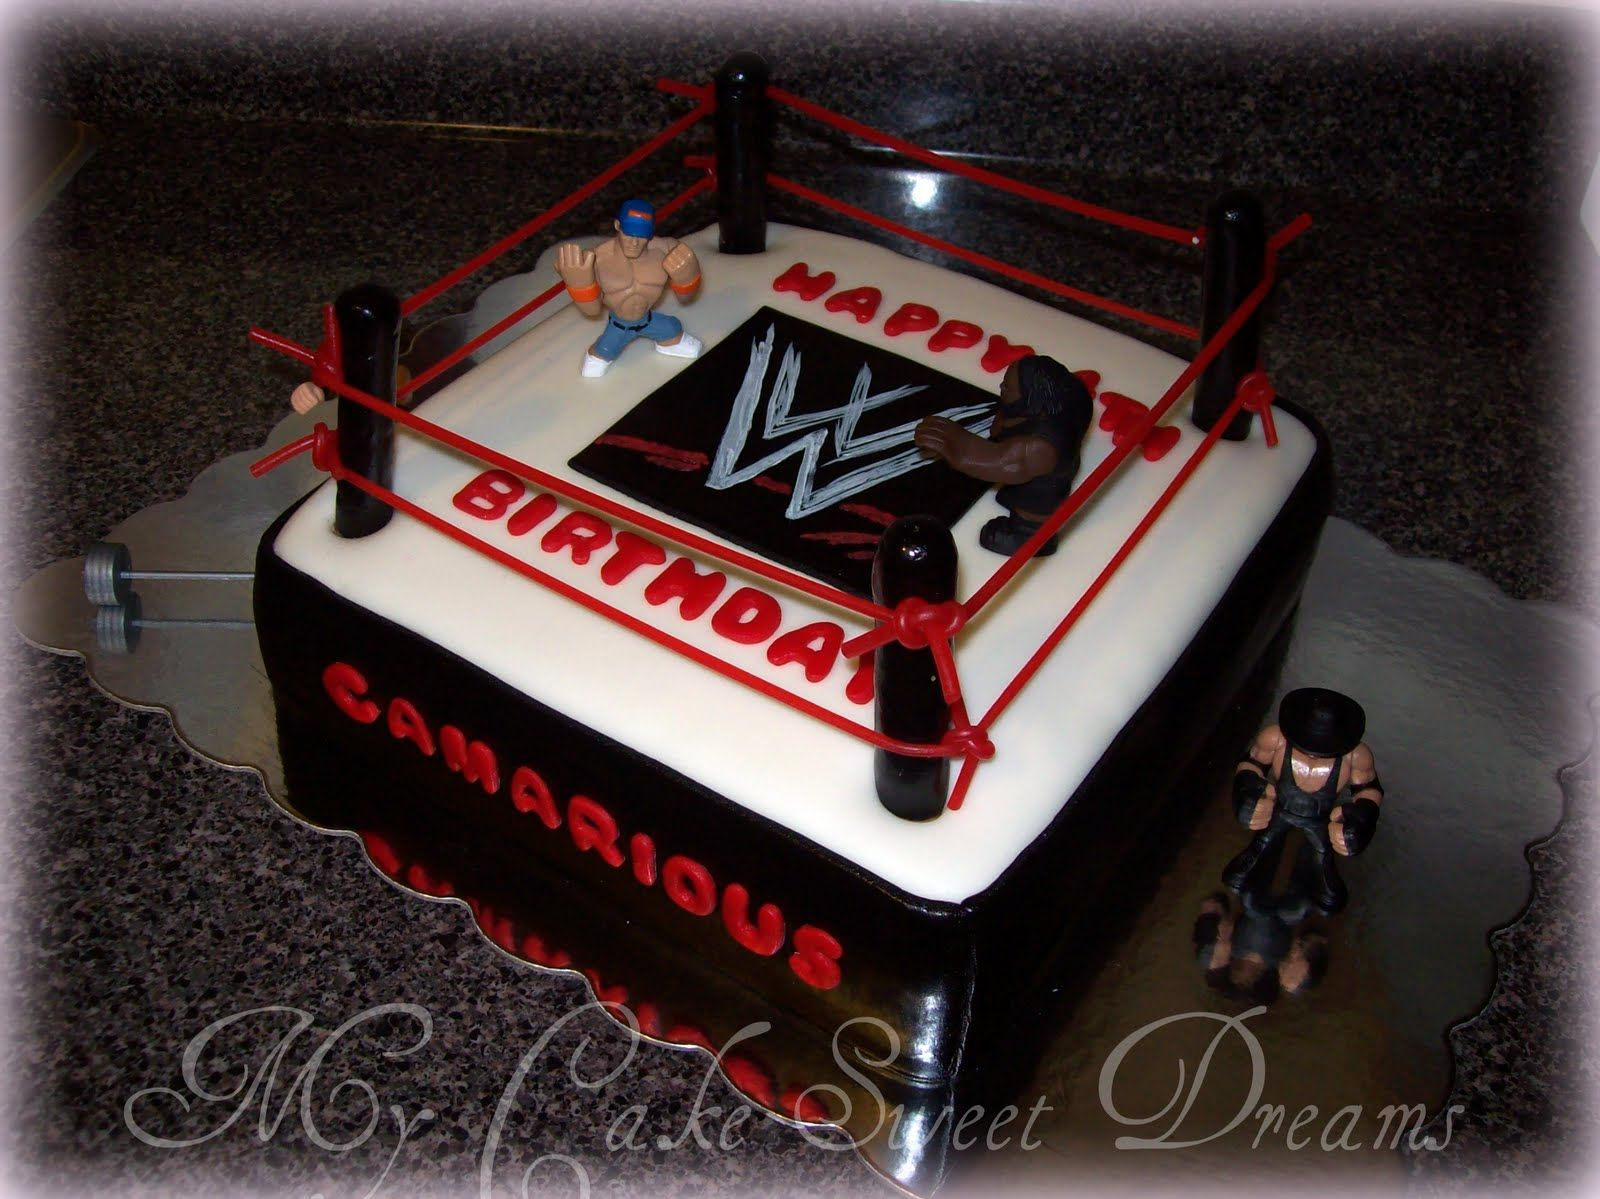 Wwf Cake My Cake Sweet Dreams Quot Wwe Wrestling Cake